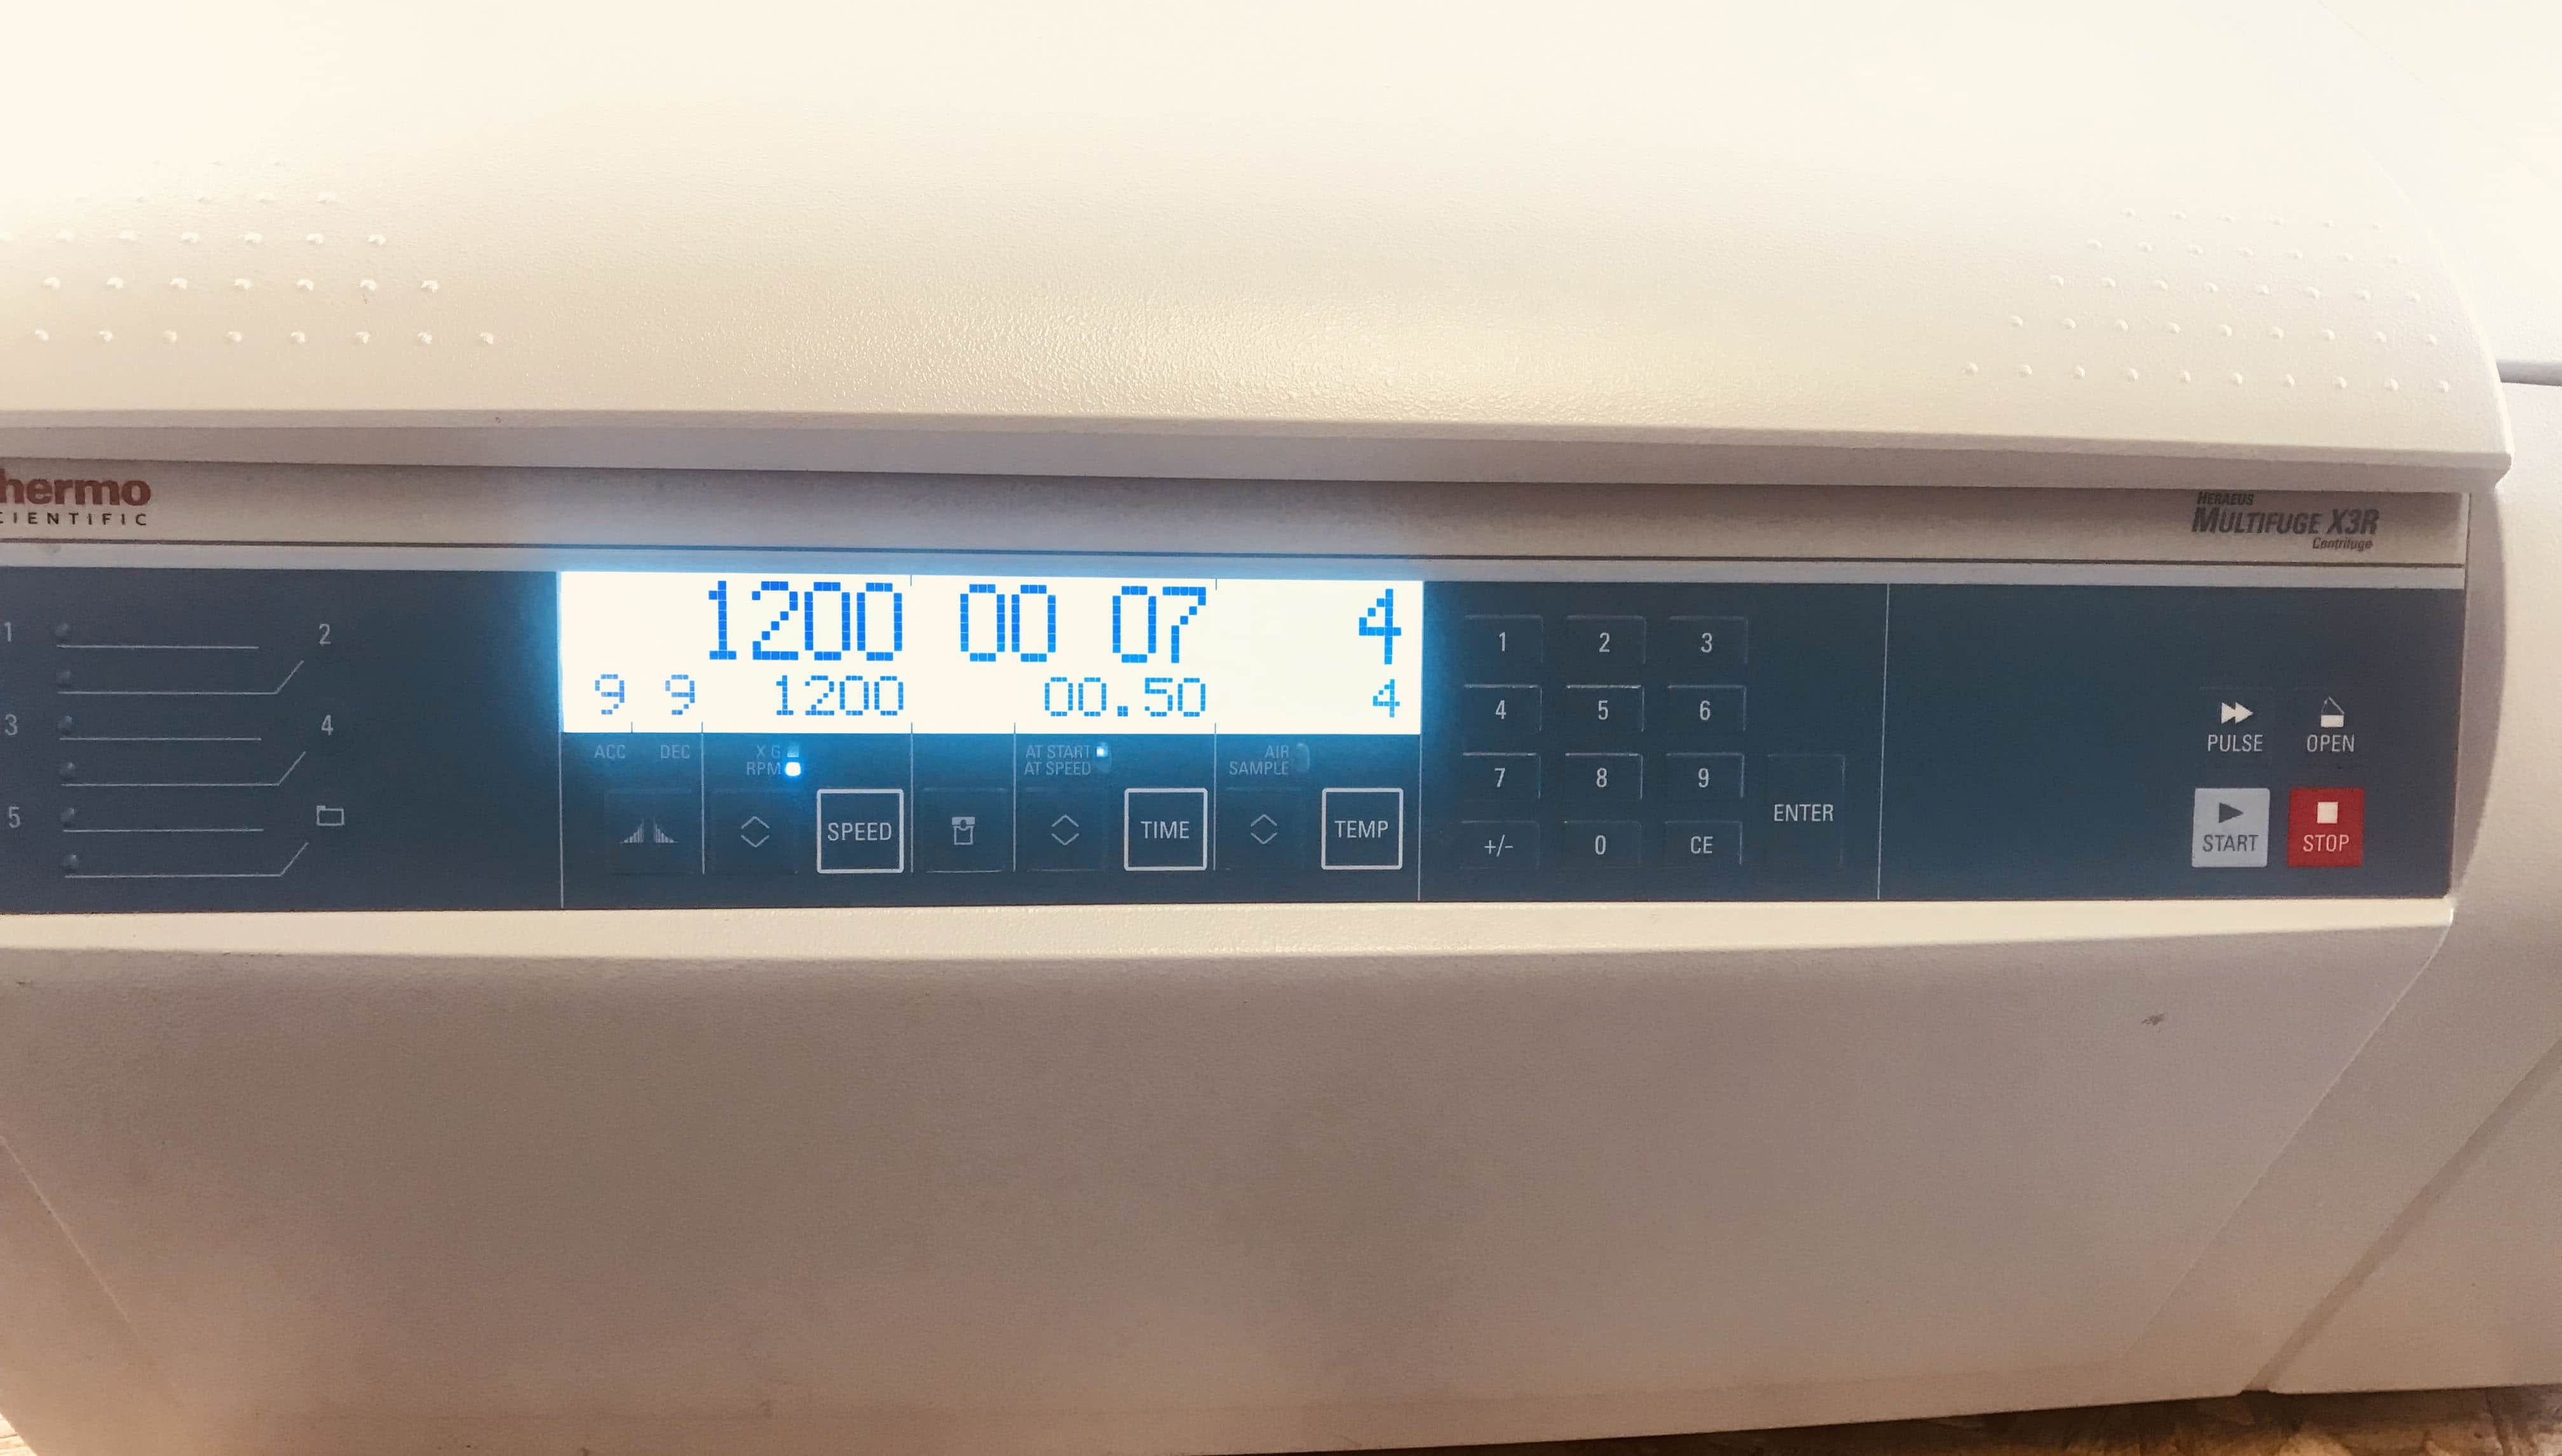 ThermoFisher Scientific Hereaus Multifuge X3R Refrigerated Centrifuge with Rotor and Adapters